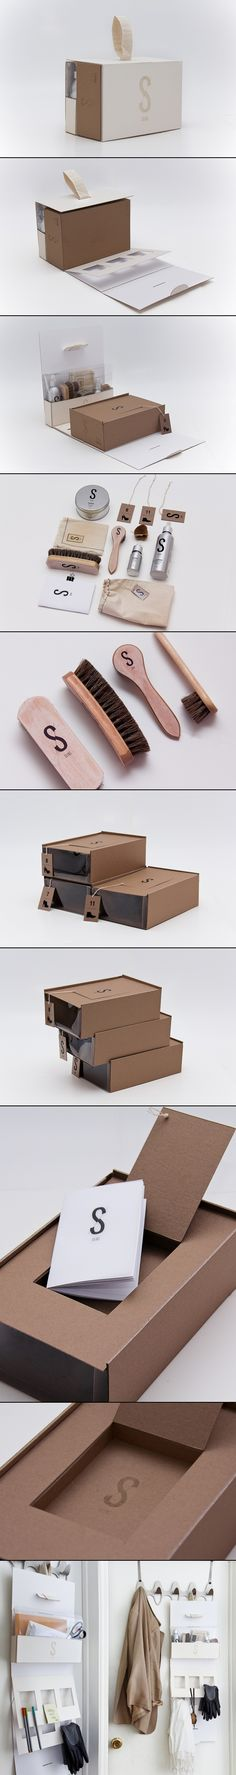 SKINS Shoe #Packaging #Design  |  Jiani Lu so cool makes me want to buy shoes you have to polish : ) PD